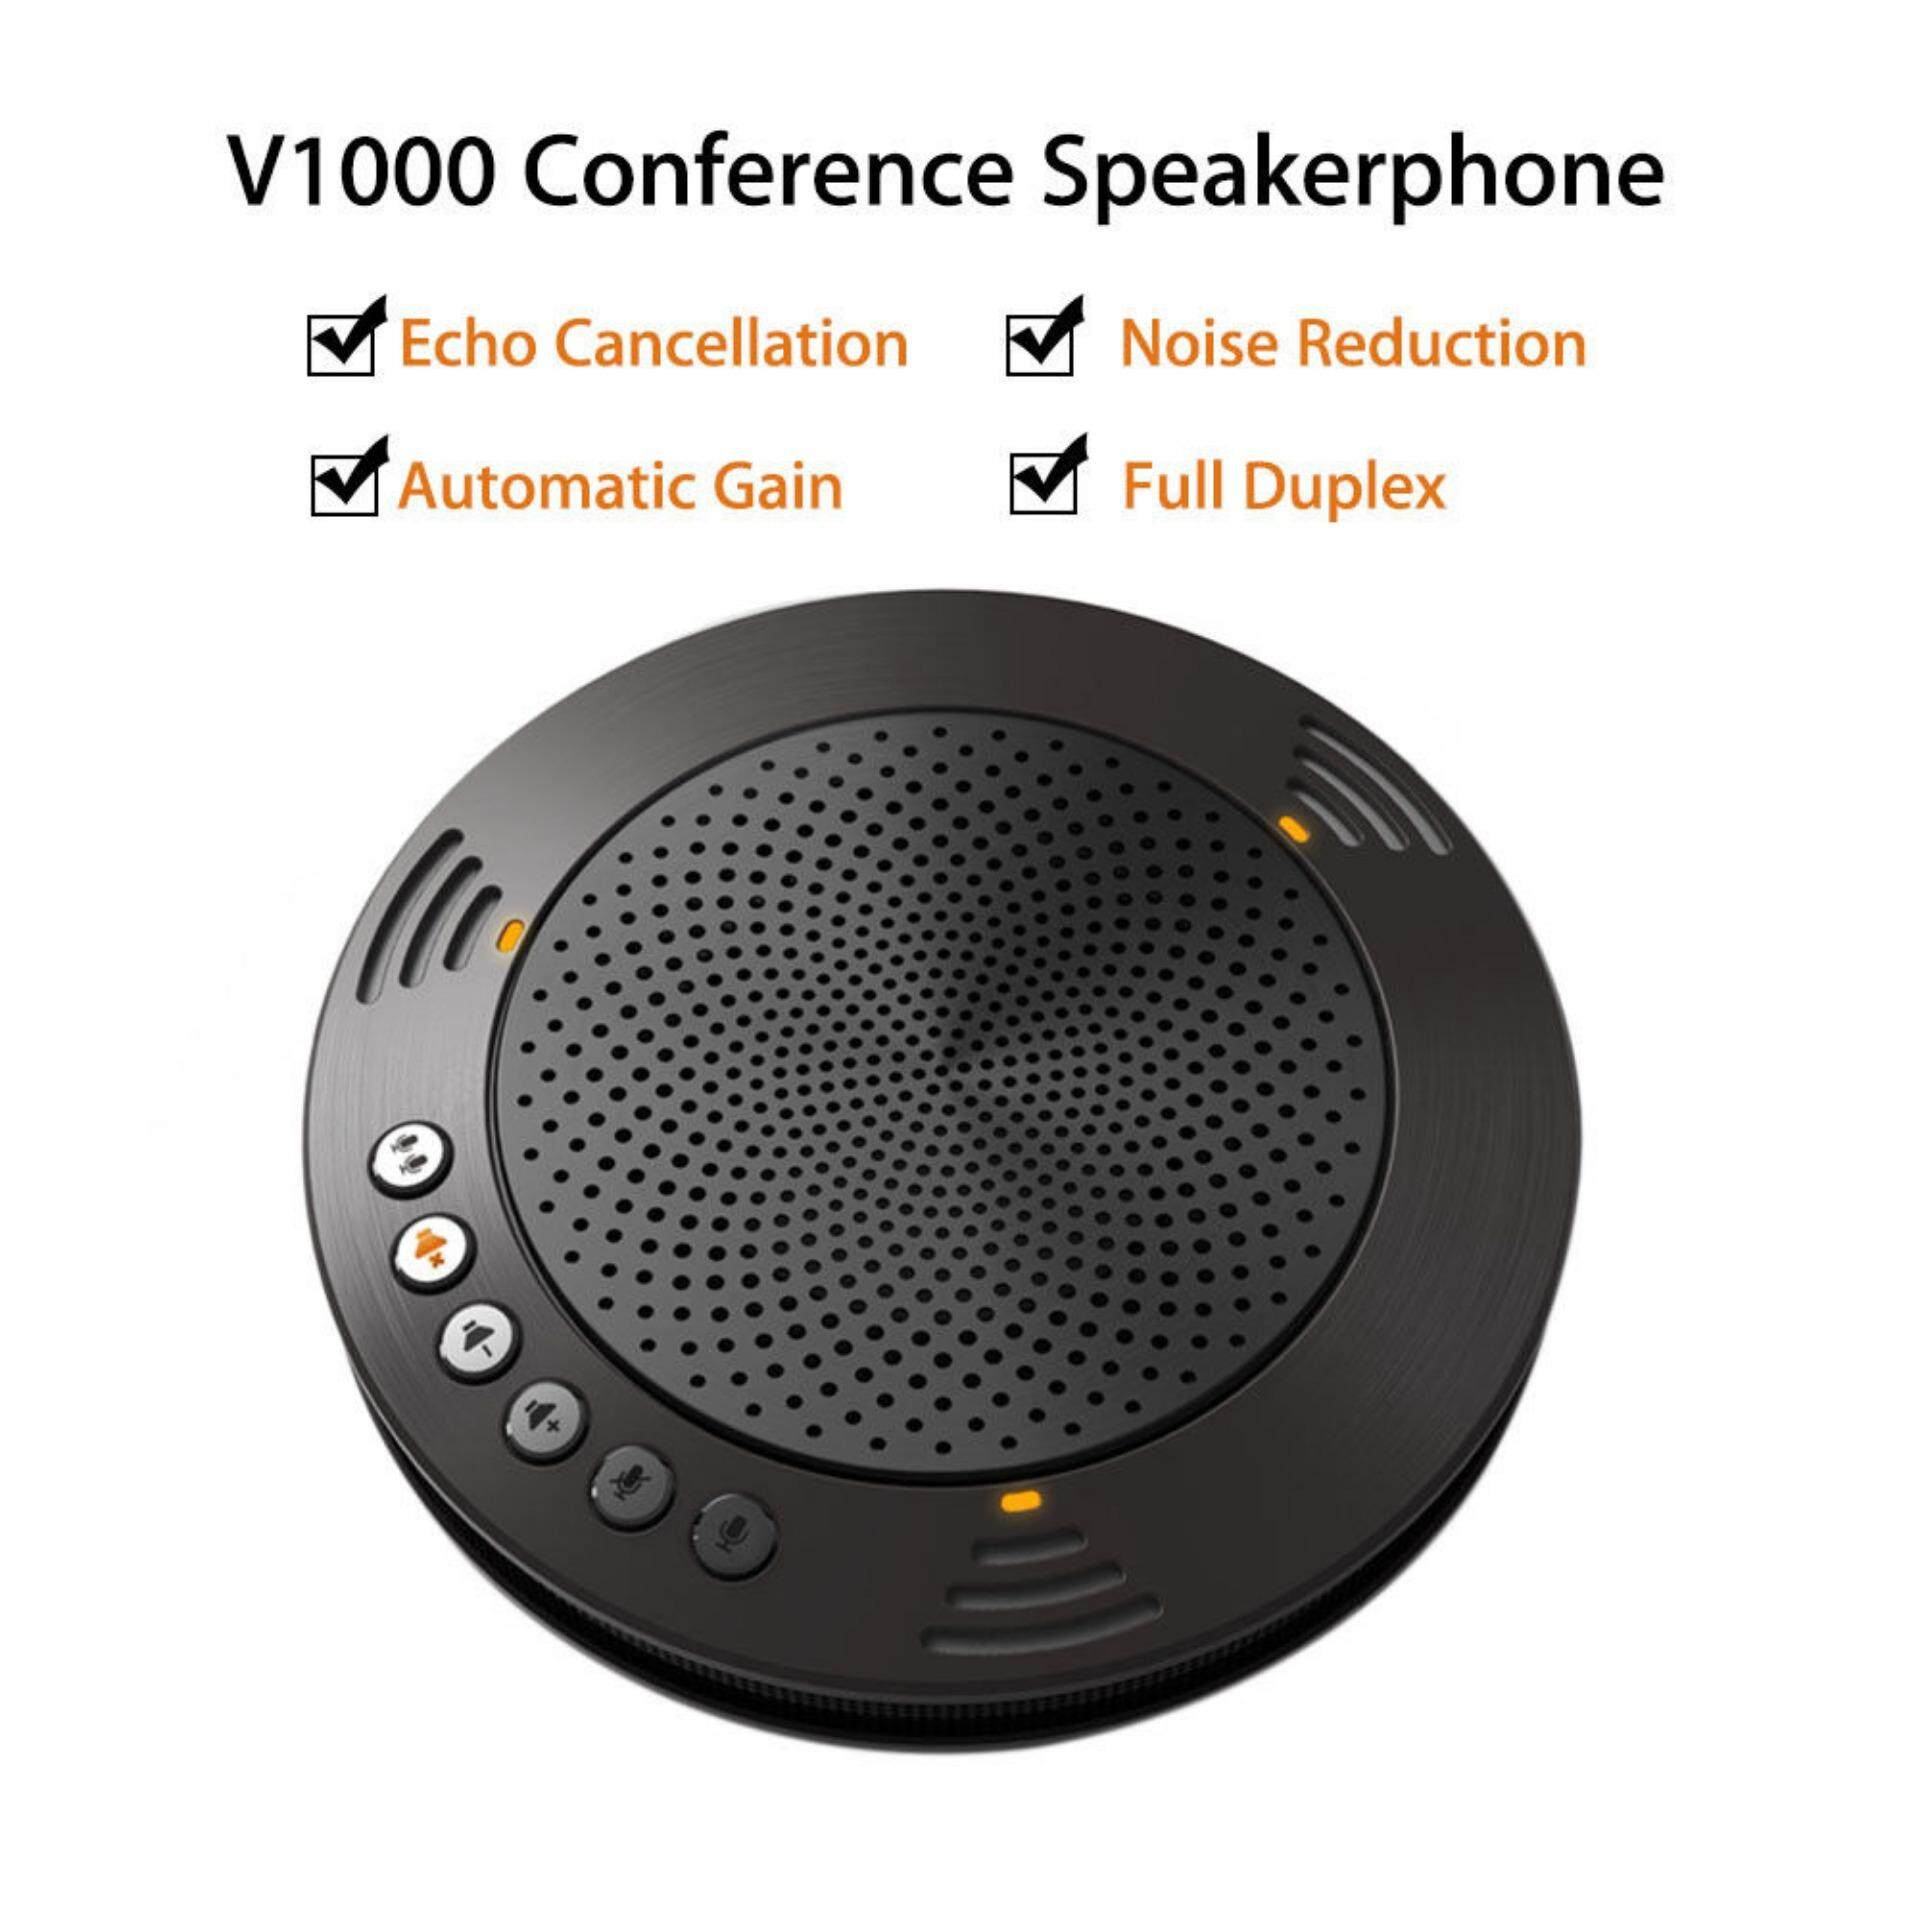 V1000 Black Portable Conference Speakerphone USB Port for Teaching Meeting Office